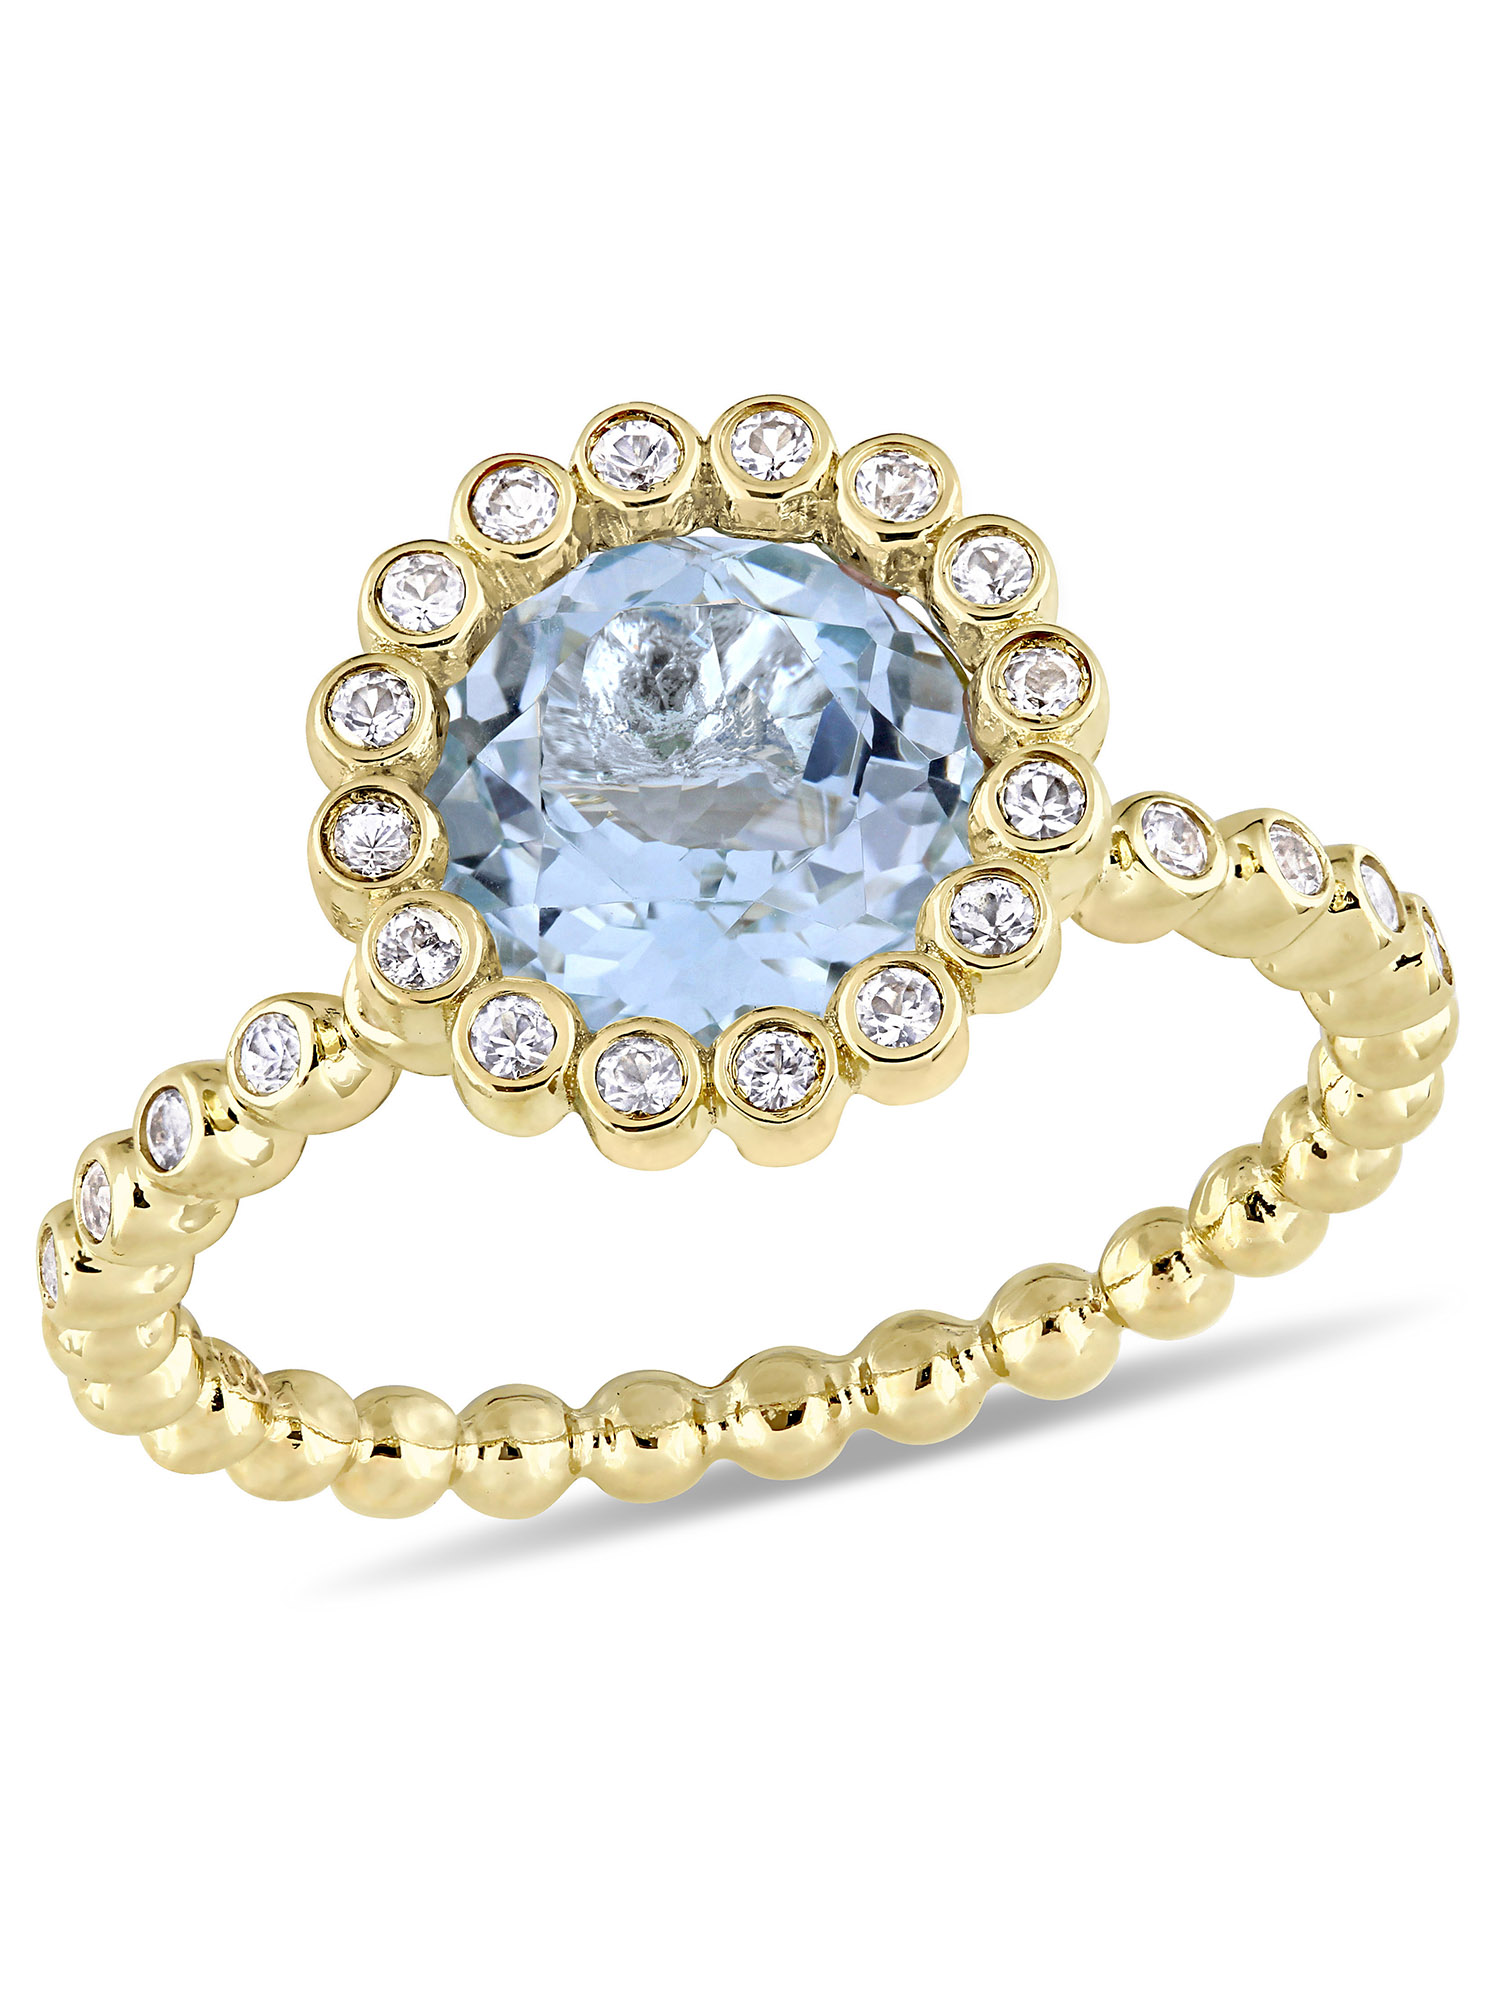 Tangelo 2-5/8 Carat T.G.W. Sky-Blue Topaz and White Sapphire 10kt Yellow Gold Halo Engagement Ring